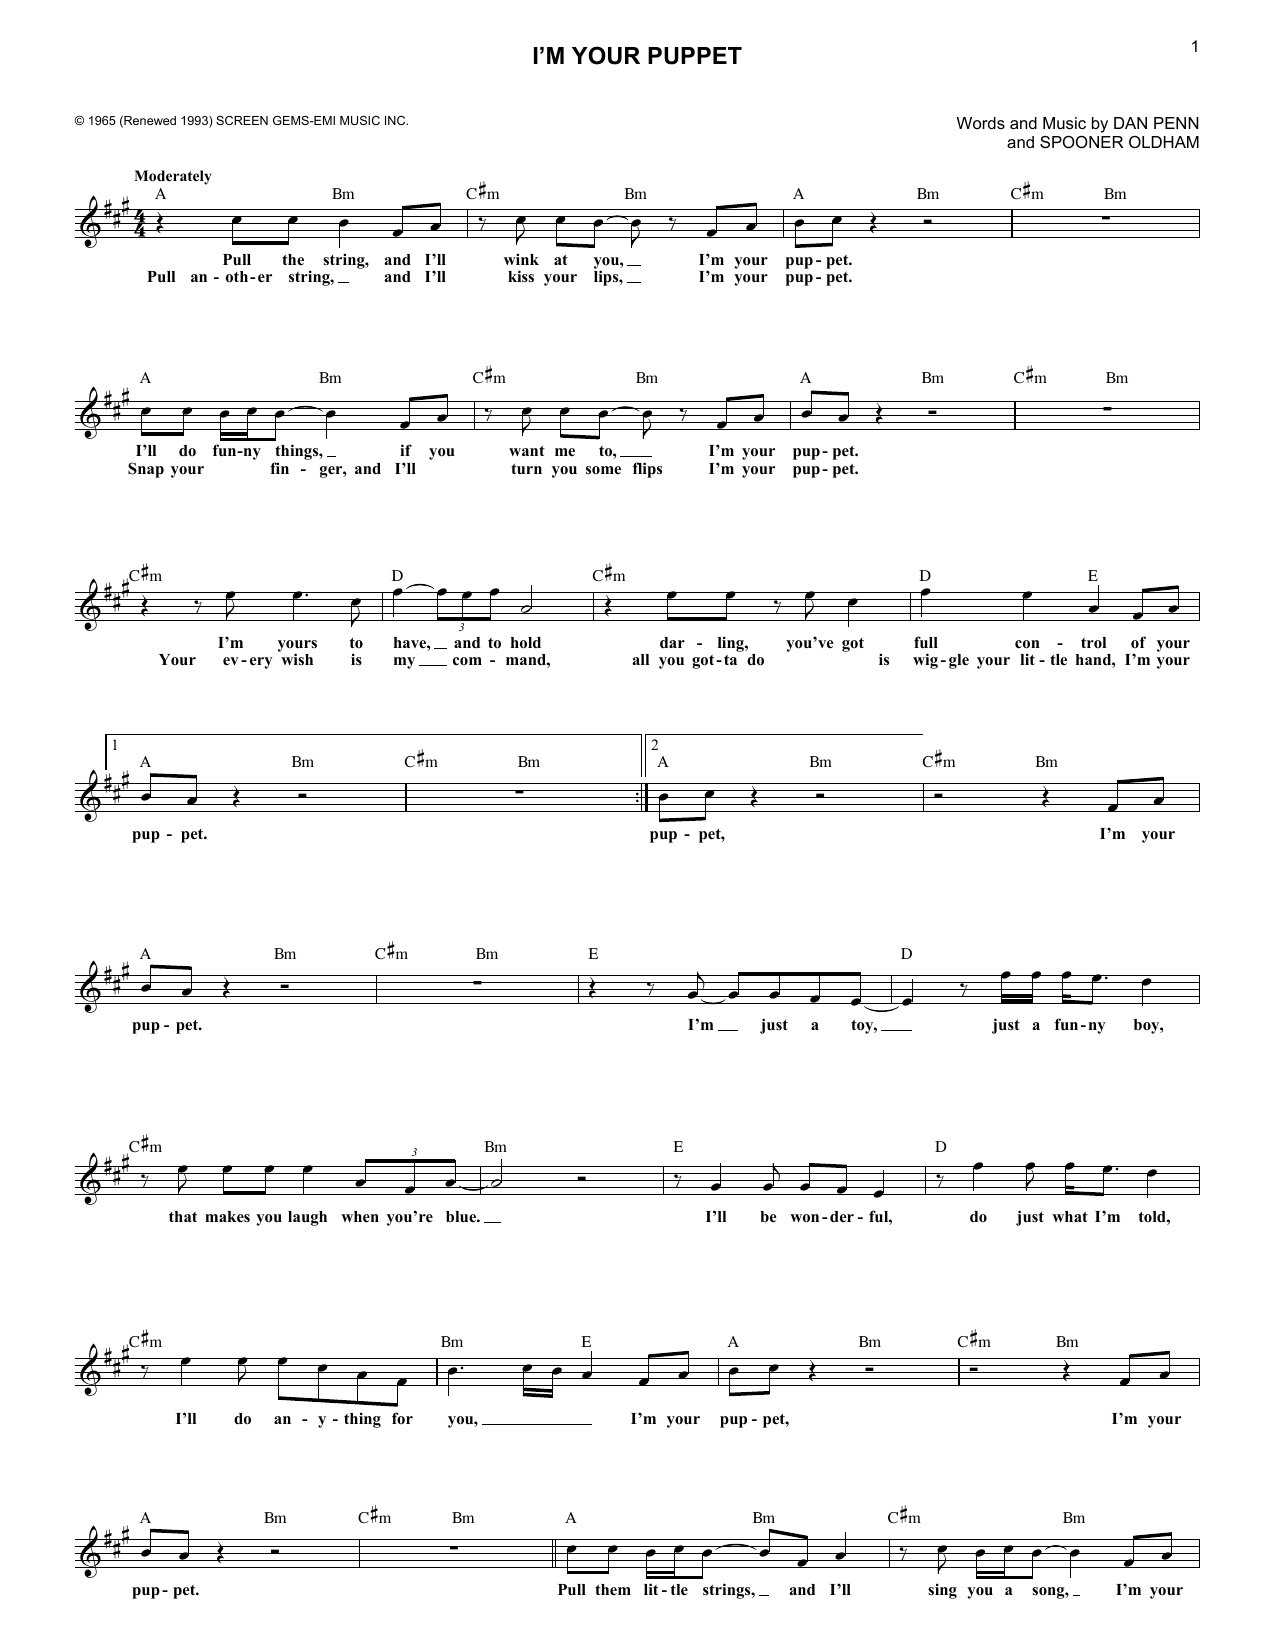 James Bobby Purify Im Your Puppet Sheet Music Notes Chords